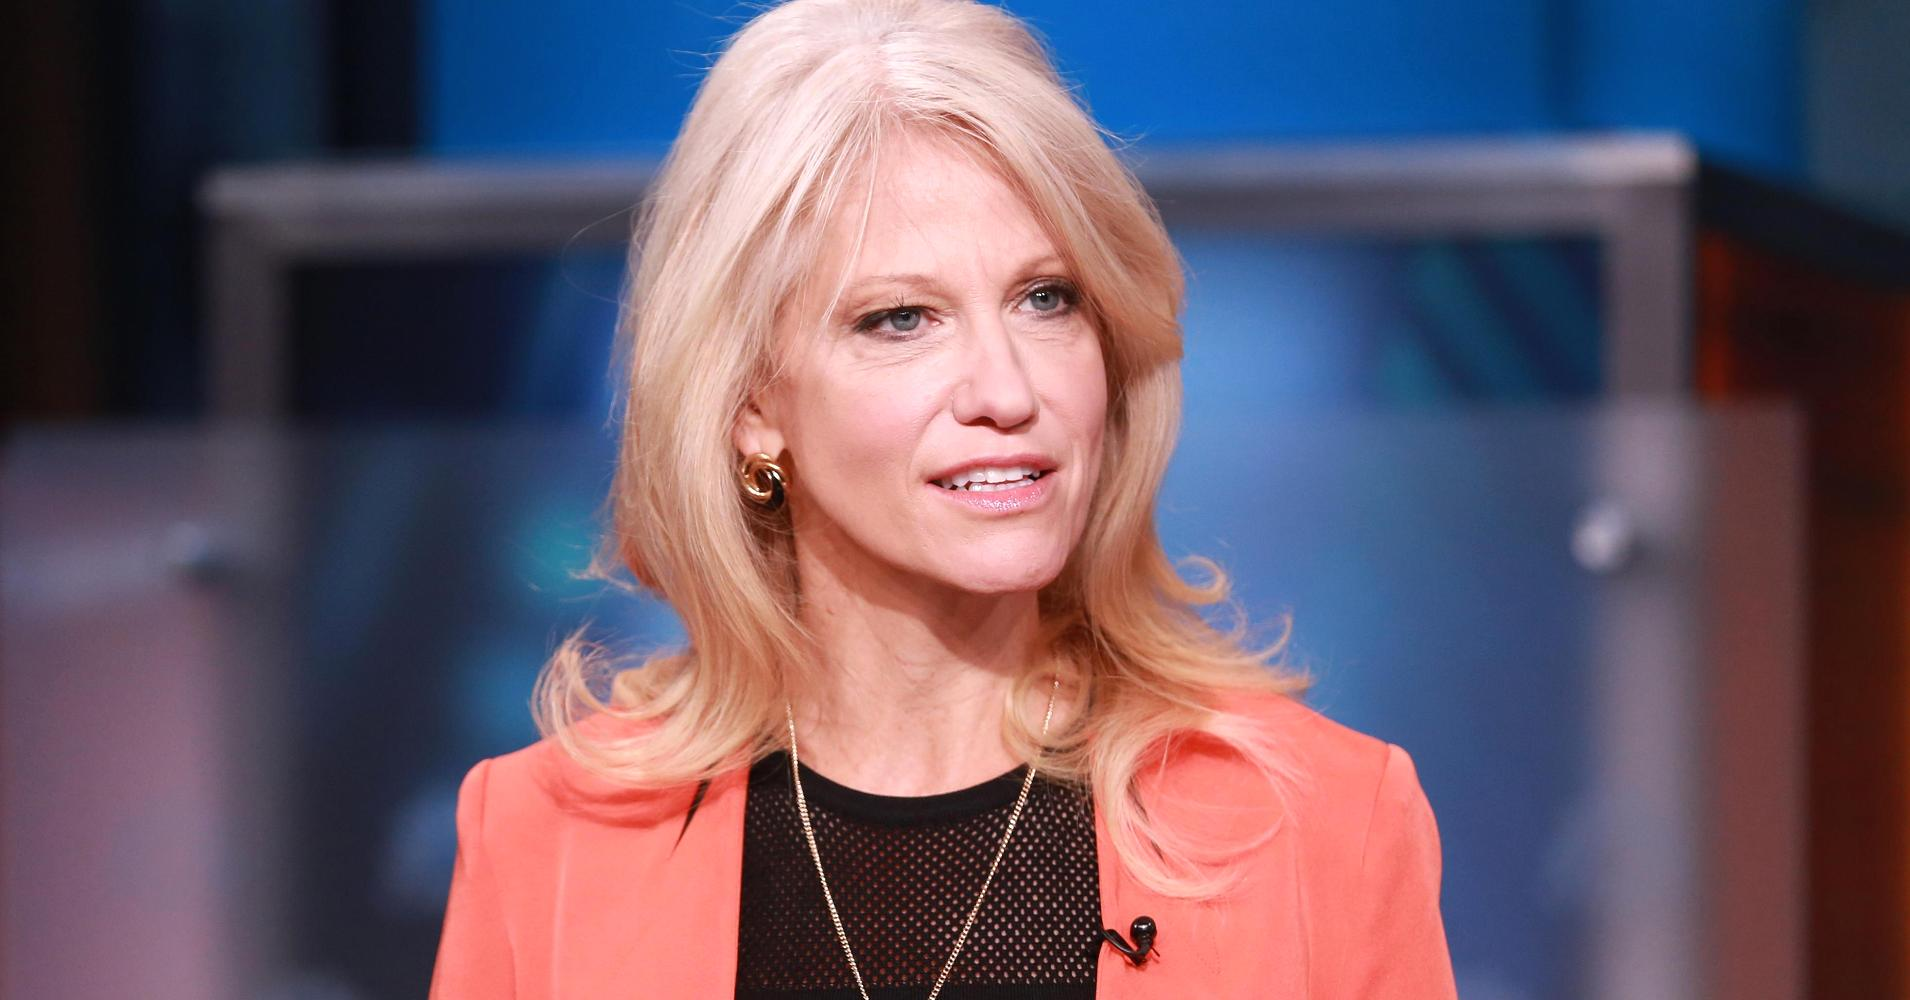 Kellyanne Conway - Her Religion, Hobbies, and Political Views